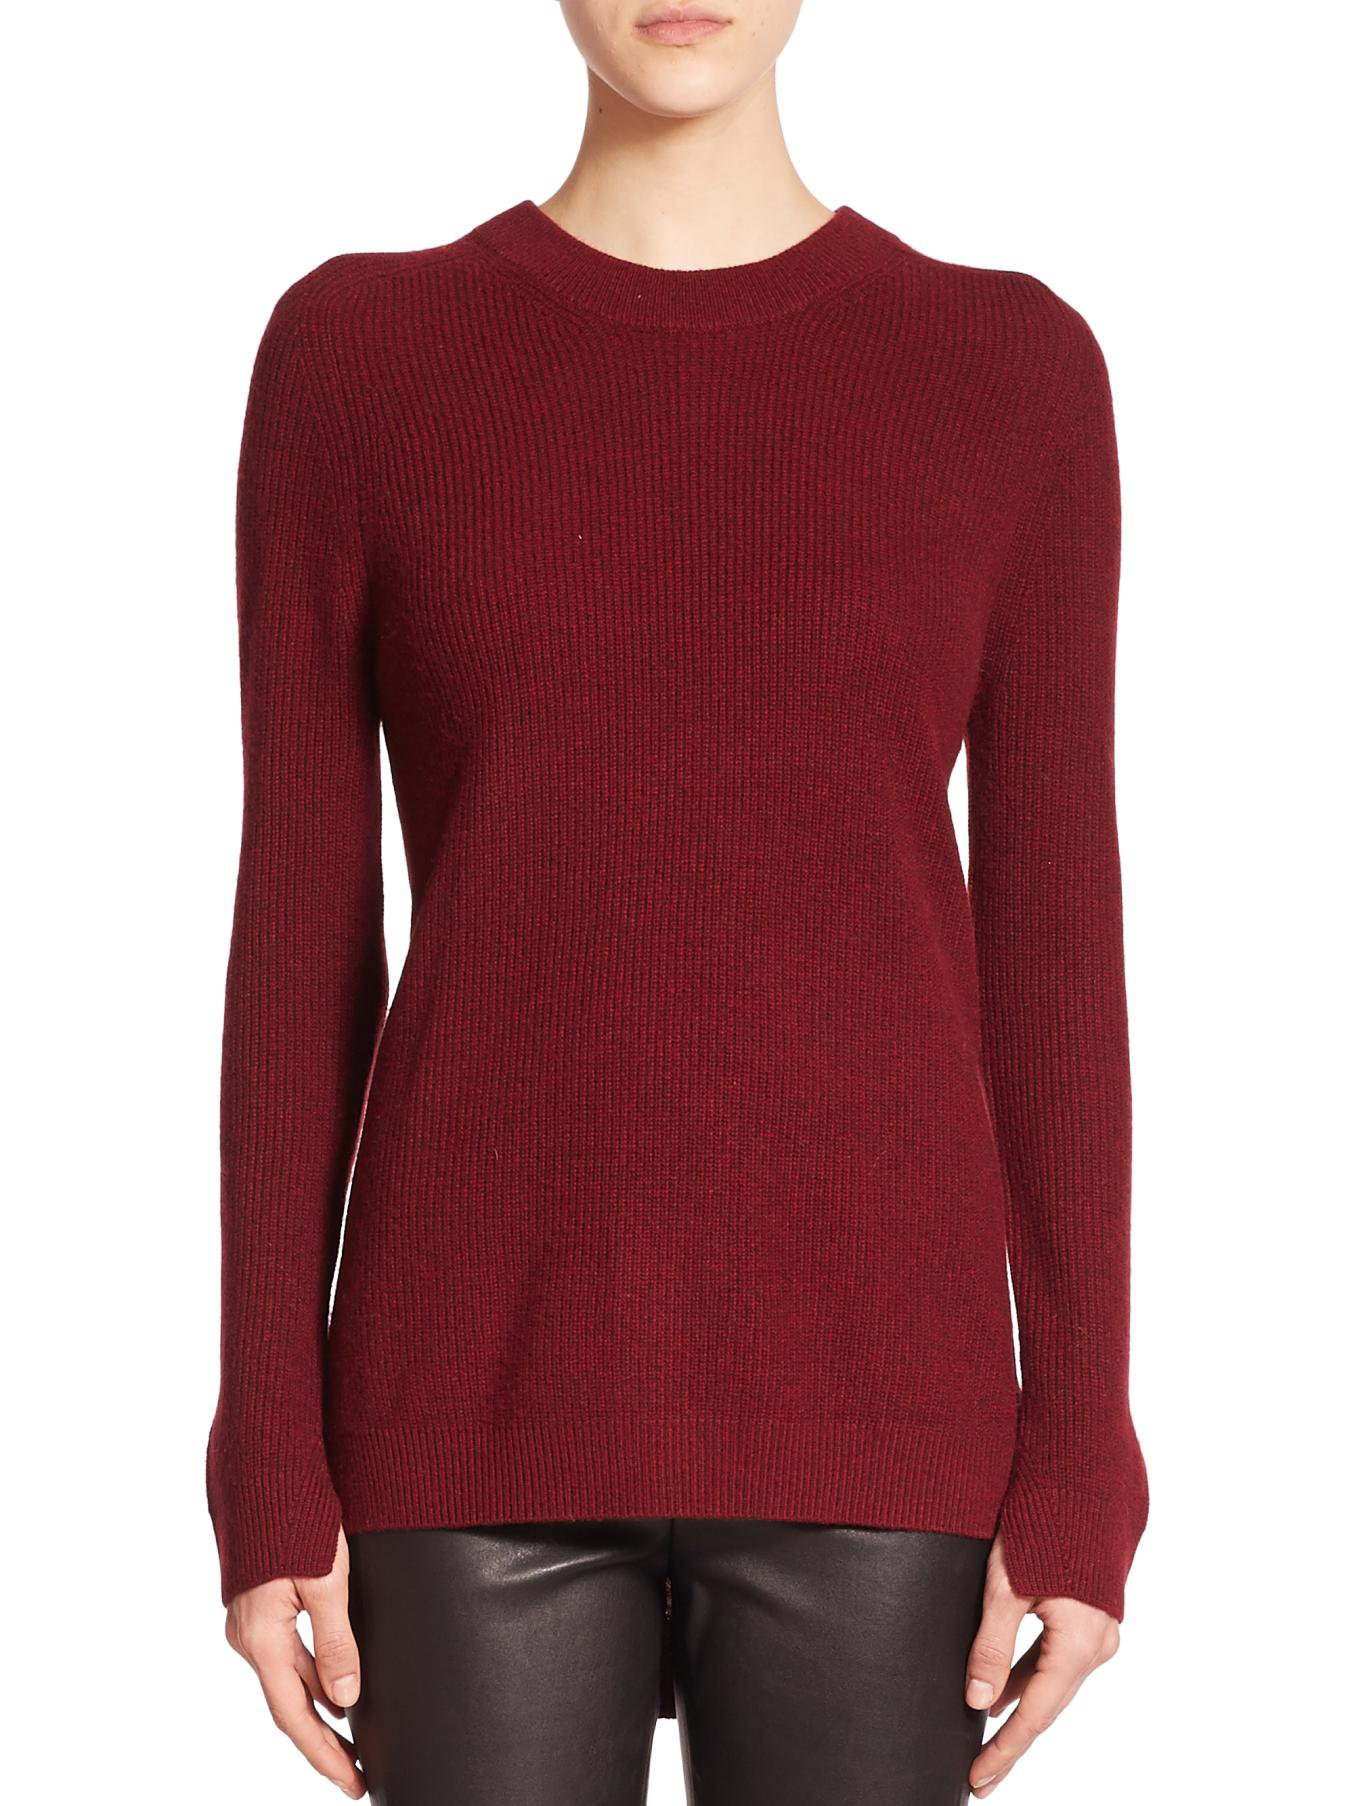 Rag & bone Valentina Ribbed Cashmere Sweater in Red   Lyst